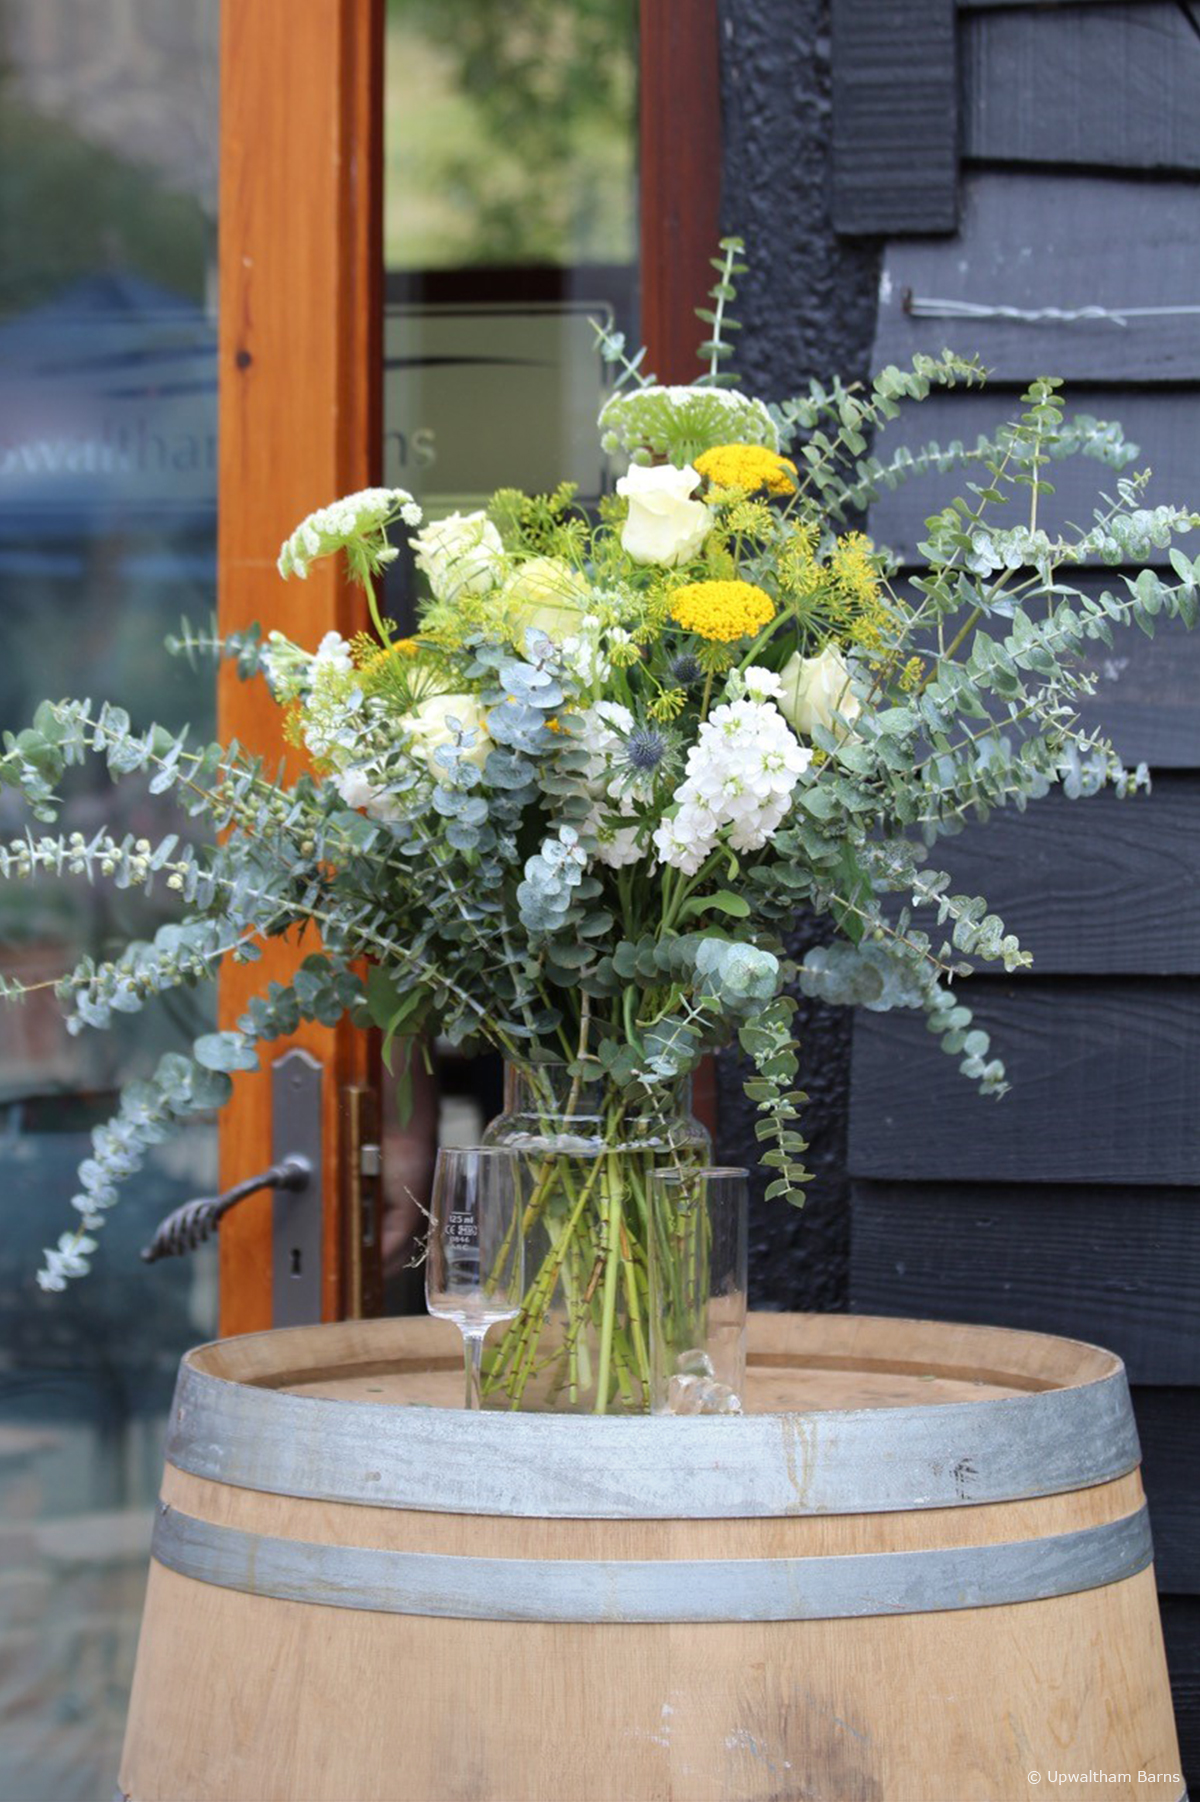 Wooden barrel plant pot ideas